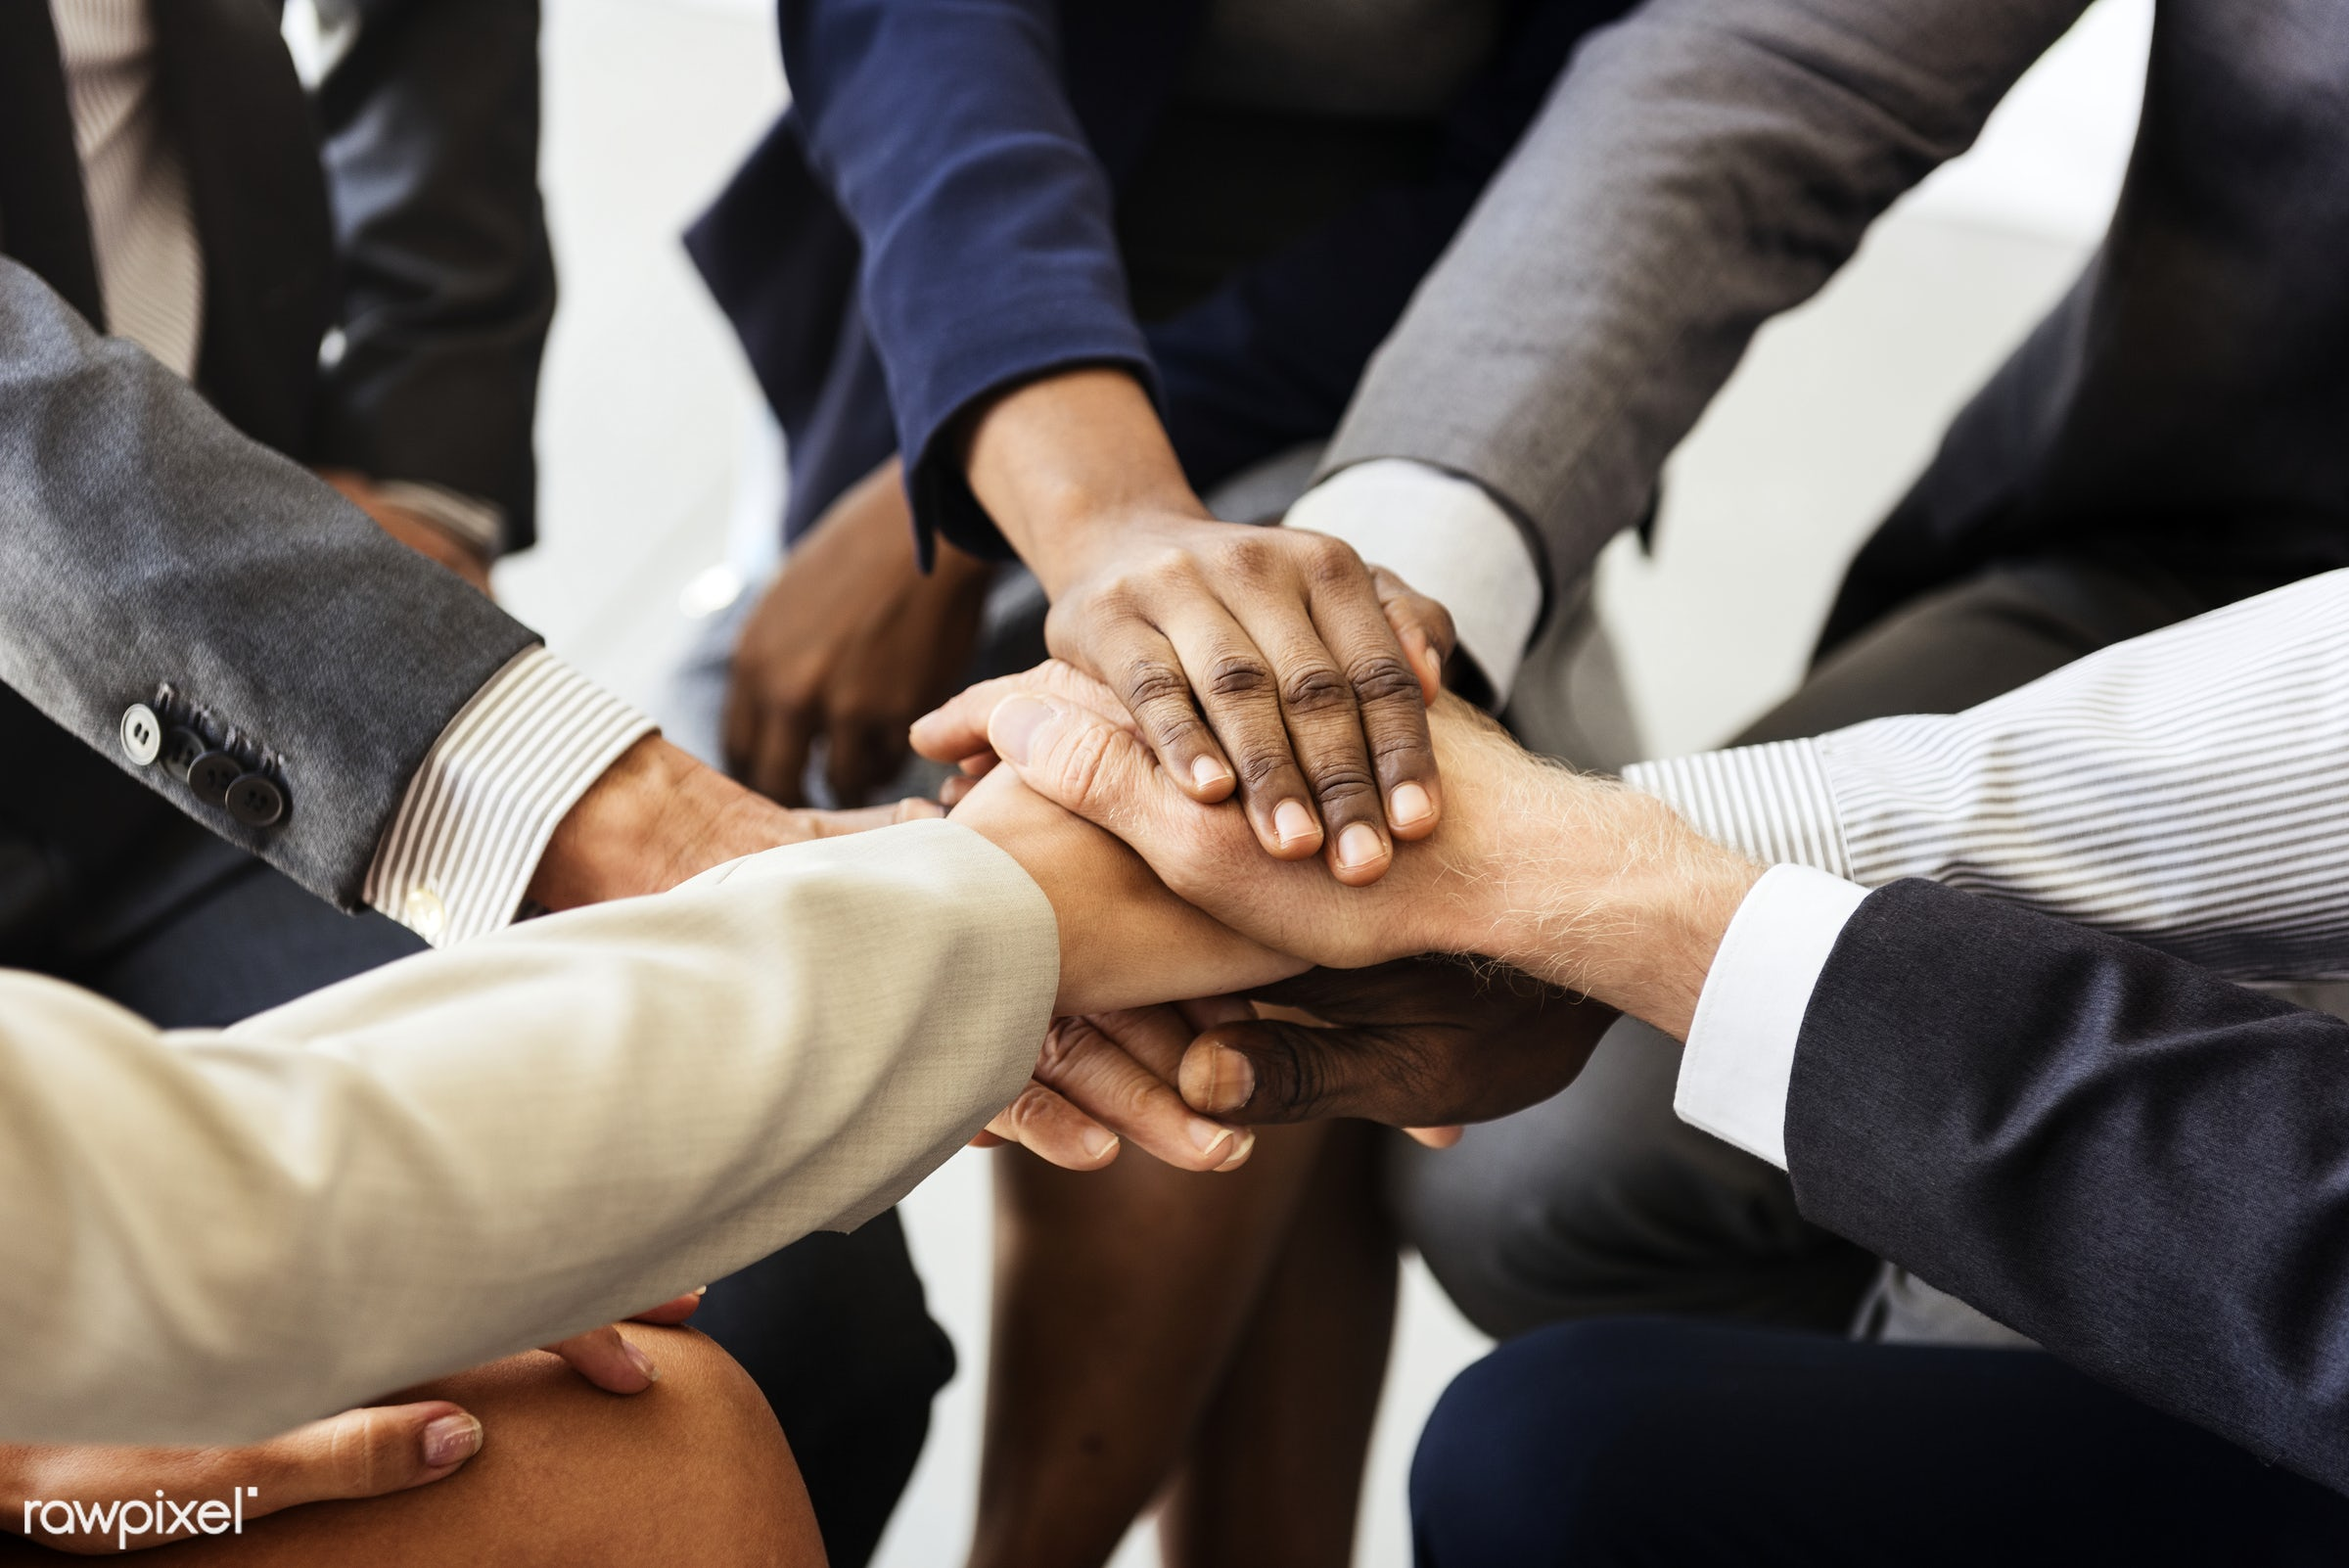 Business people joined hands together as teamwork - business, deal, power, friendship, cooperation, support, team, agreement...